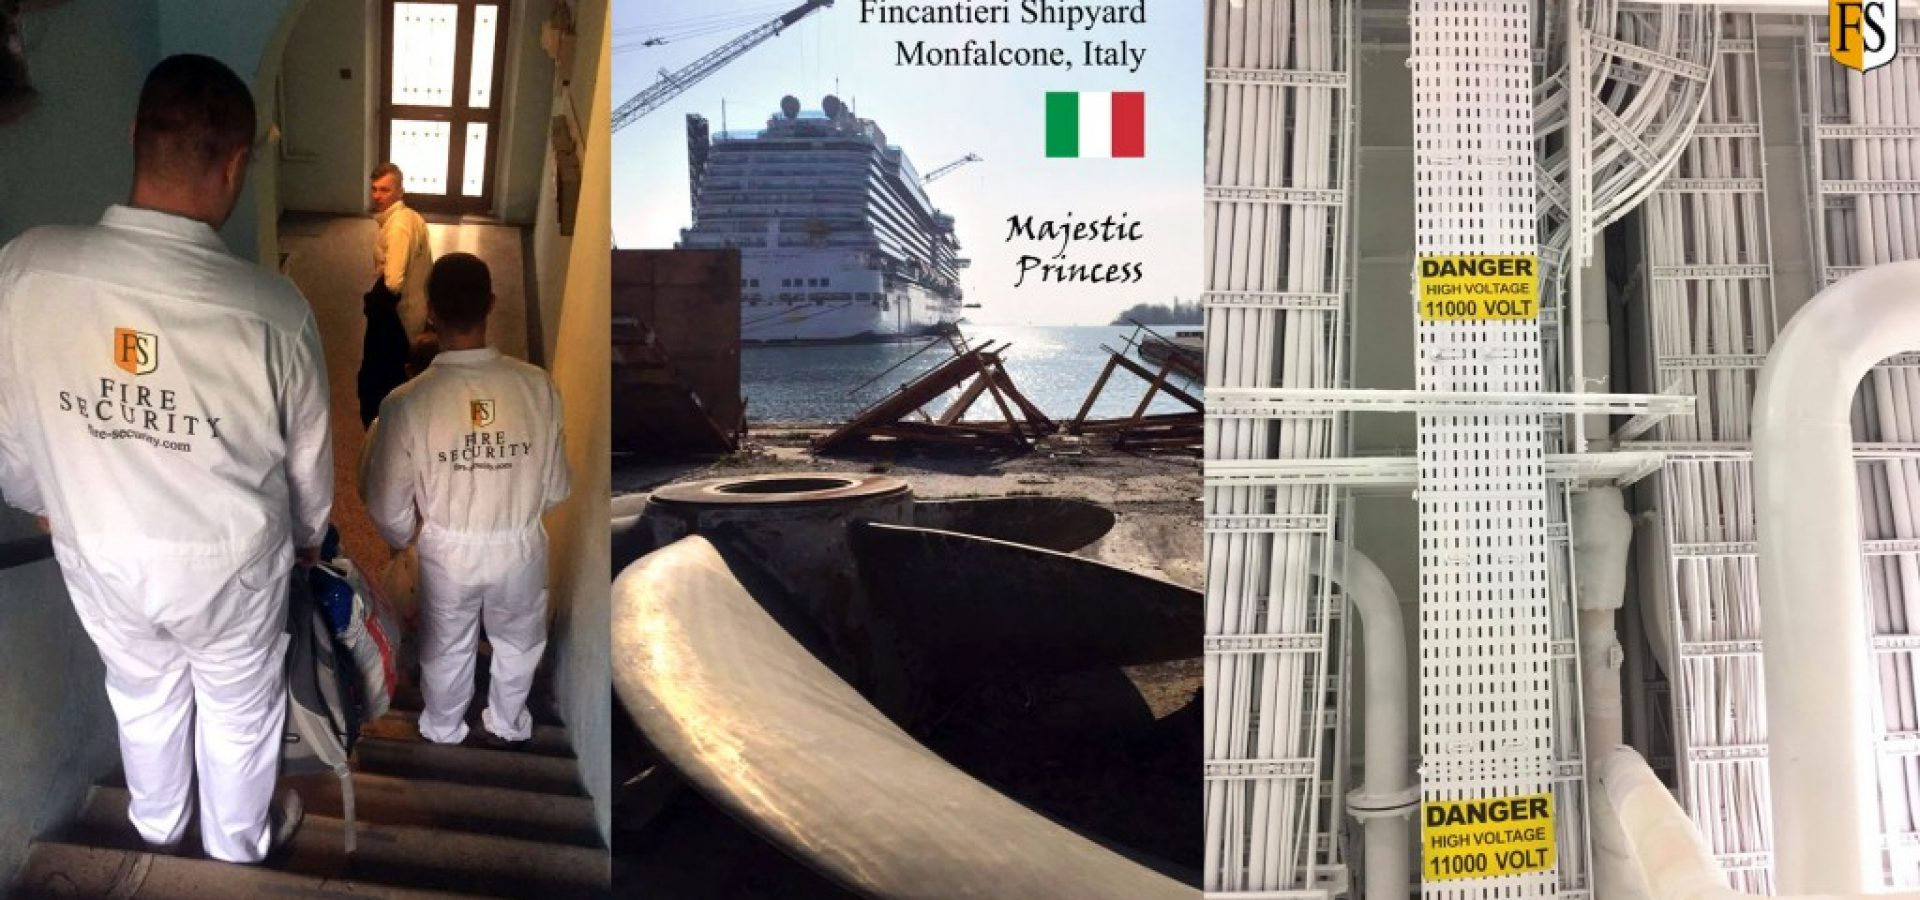 Fire-protection-cable-coating-by-Fire-Security-onboard-Majestic-Princess-at-FIncantieri-shipyard